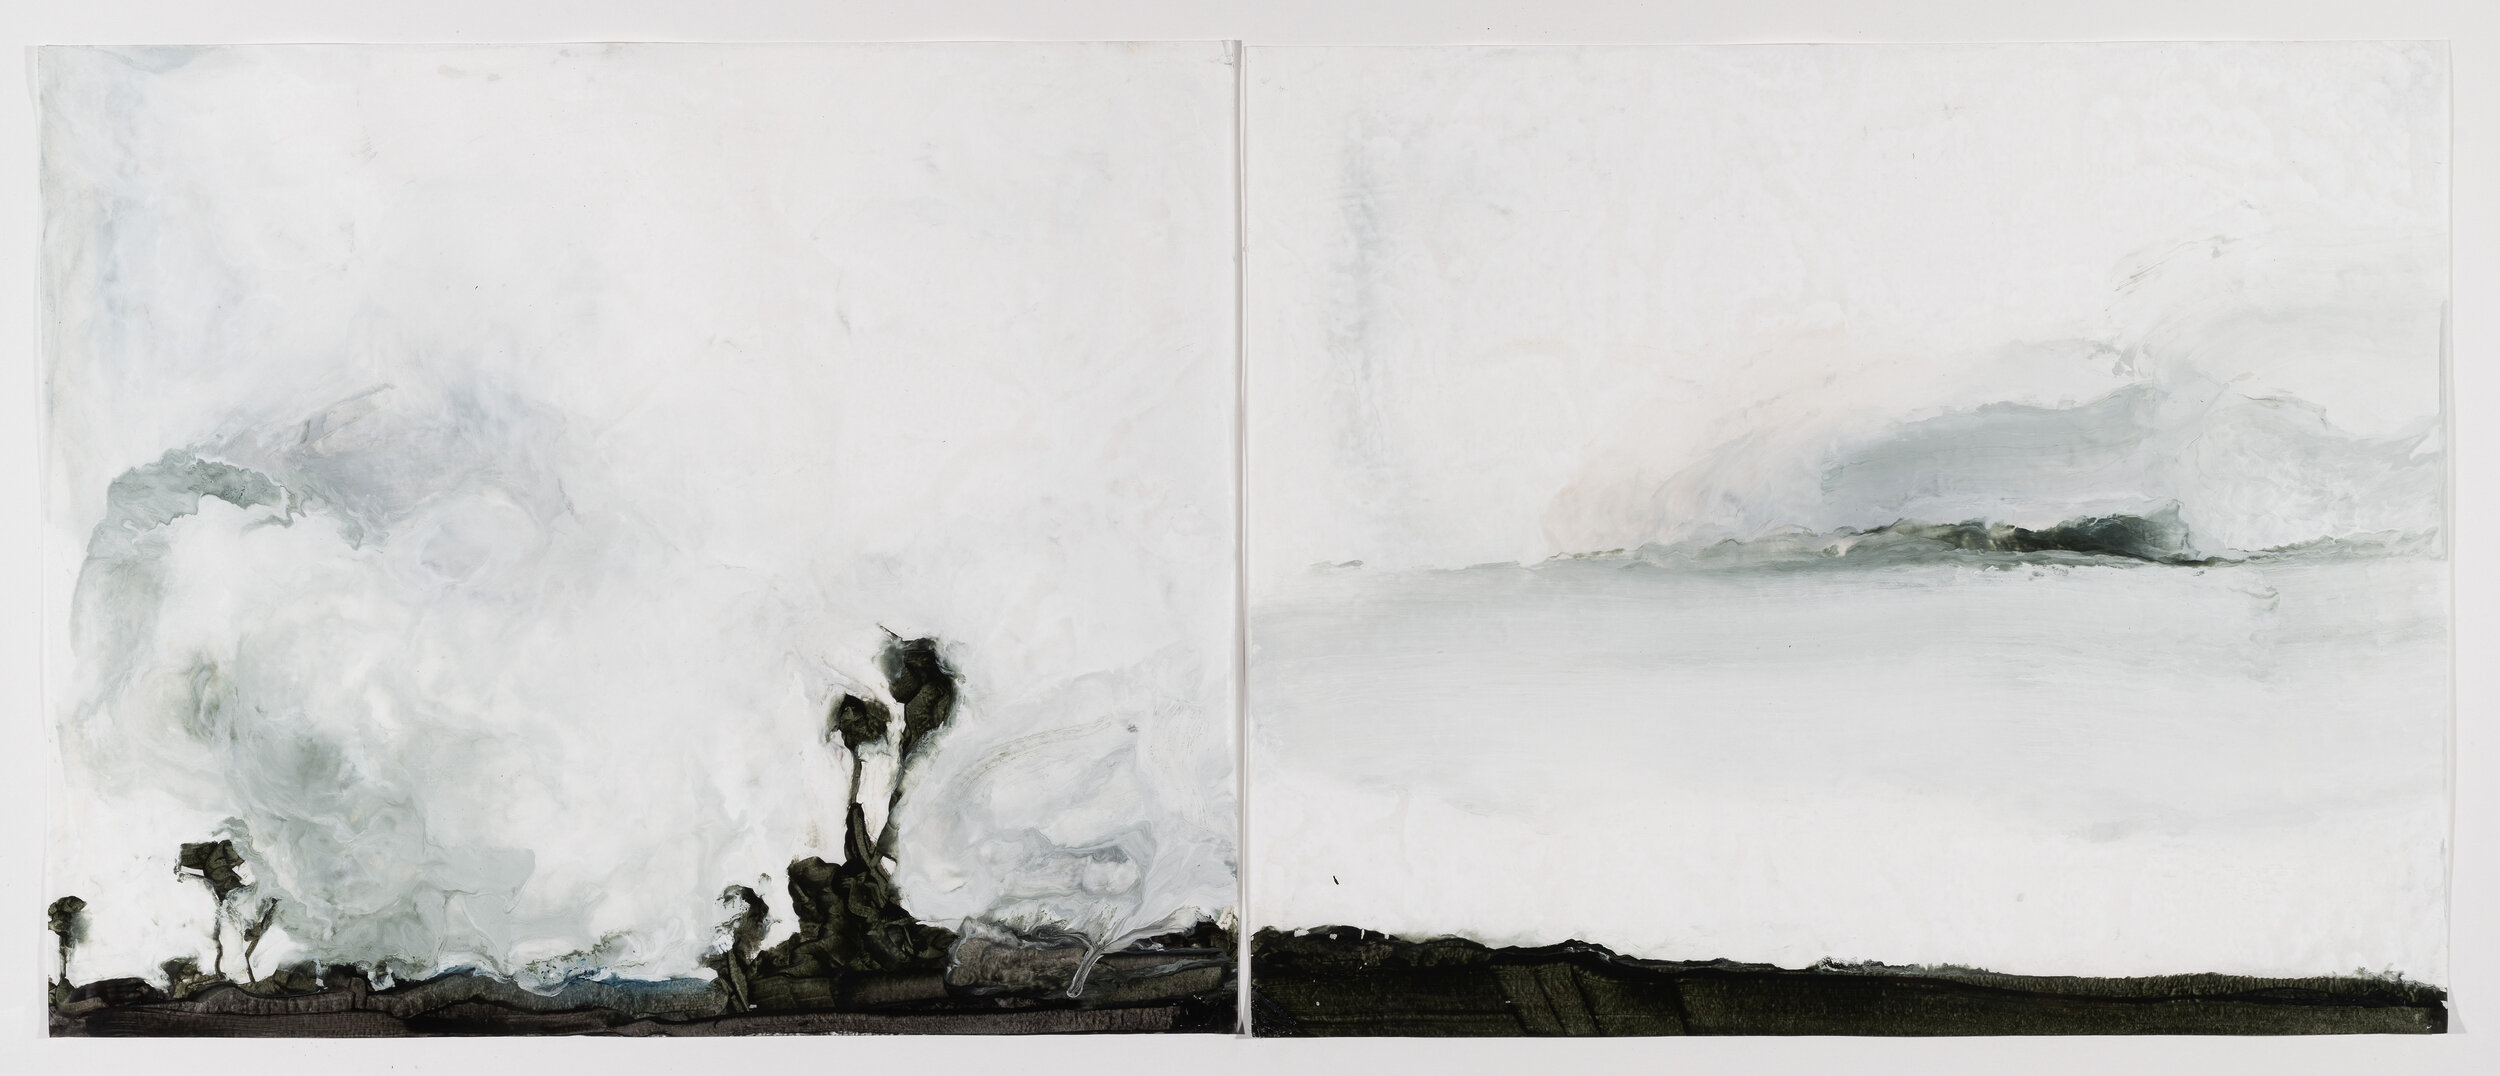 Gardiner's Island, 2019, diptych, encaustic wax on Japanese rice paper, 32 x 56 in, $5,000